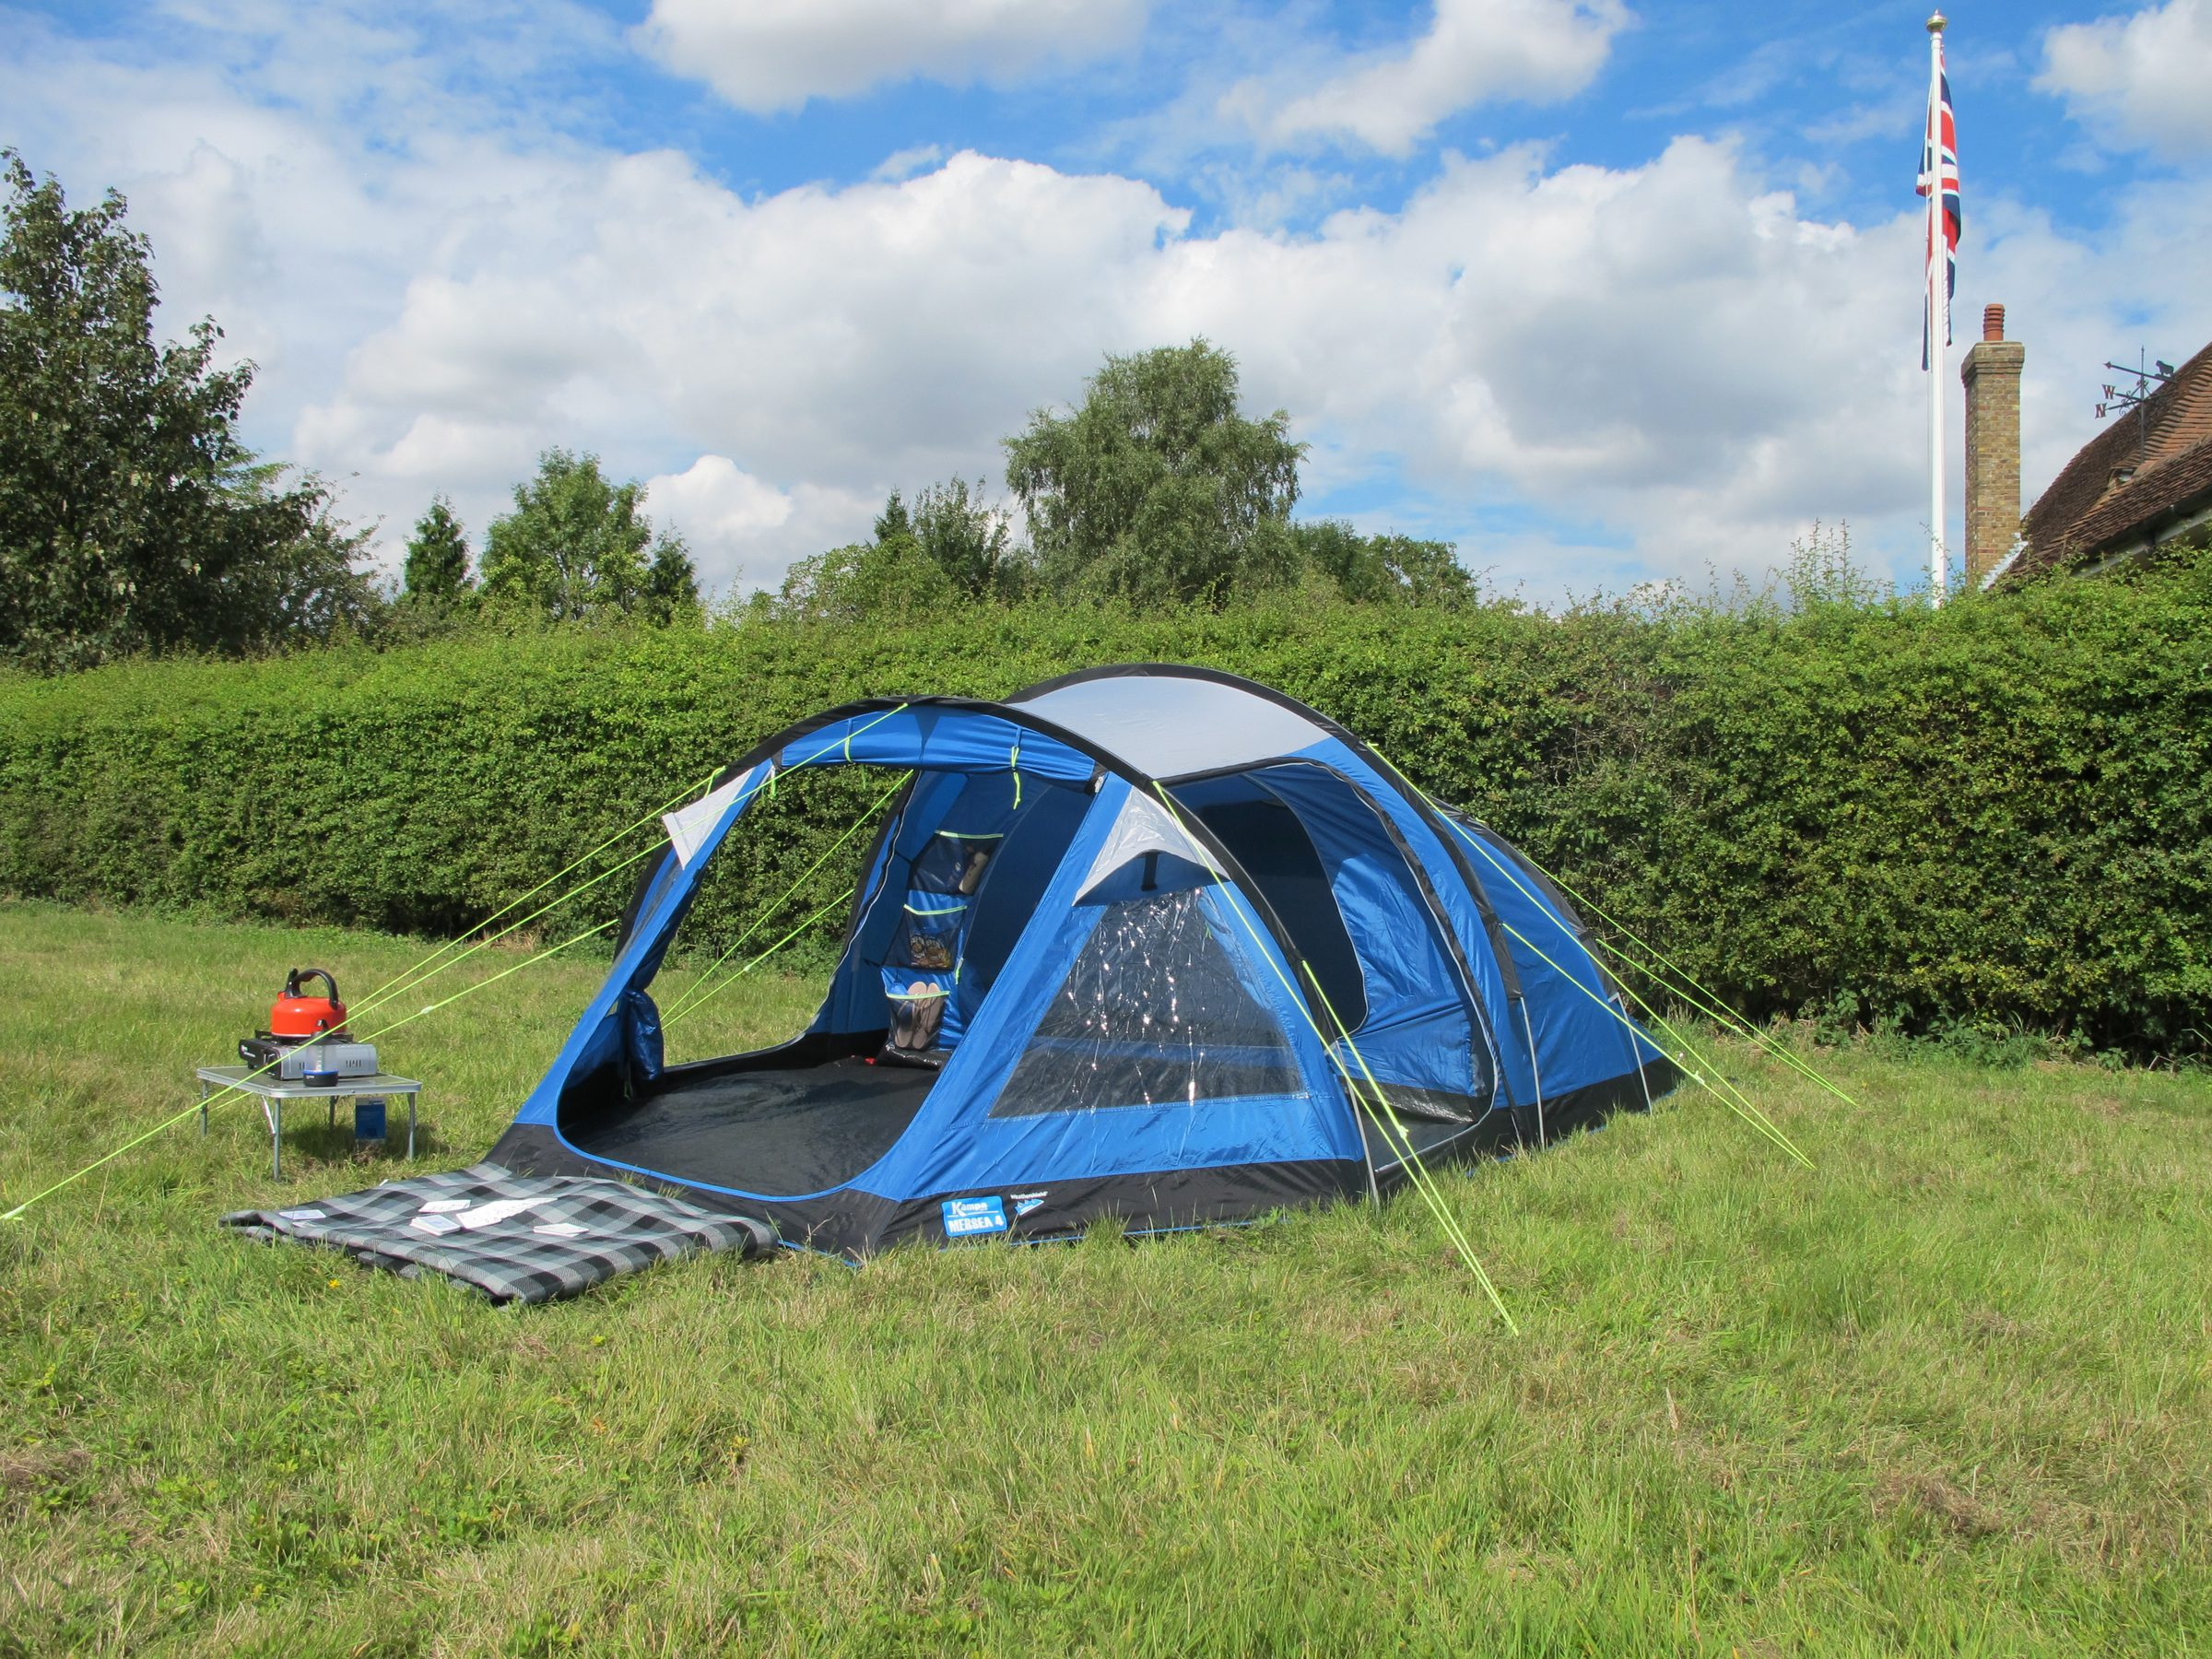 K&a Mersea 4 Tent 2018 & Kampa Mersea 4 Tent 2018 | 4/5 Person Tents | Norwich Camping